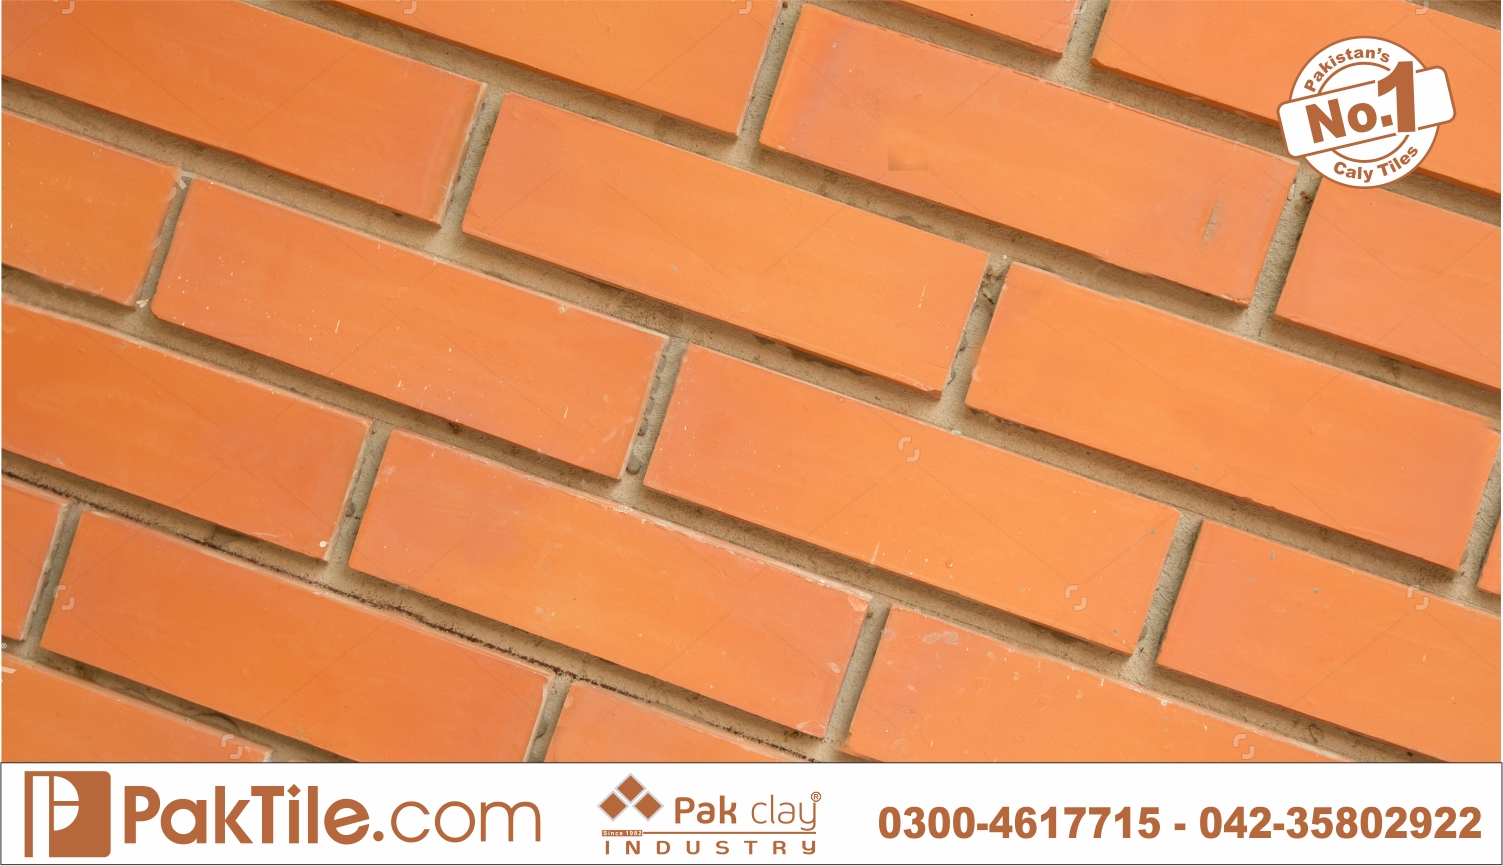 9 Pak clay front wall facing red brick tiles in pakistan images